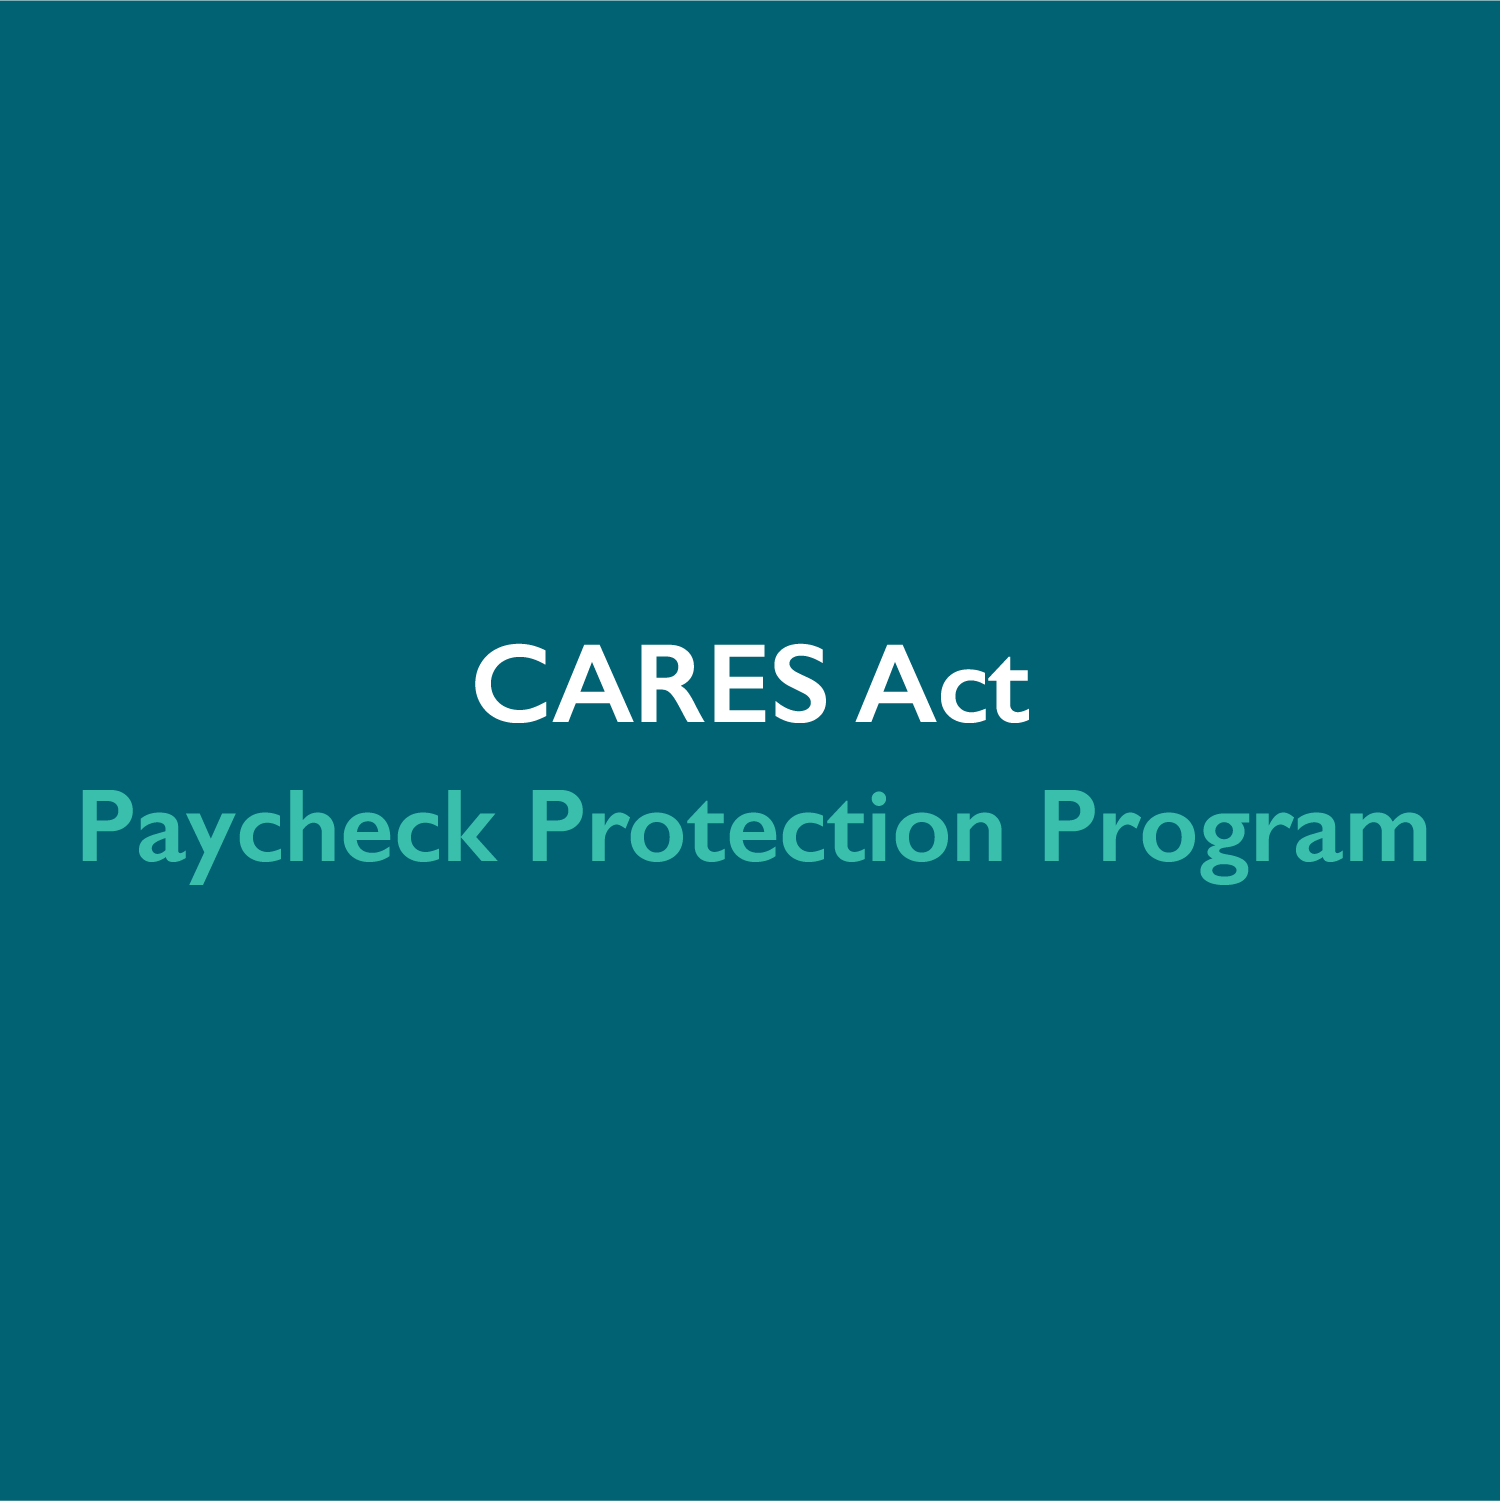 Important Clarifications Regarding the Paycheck Protection Program